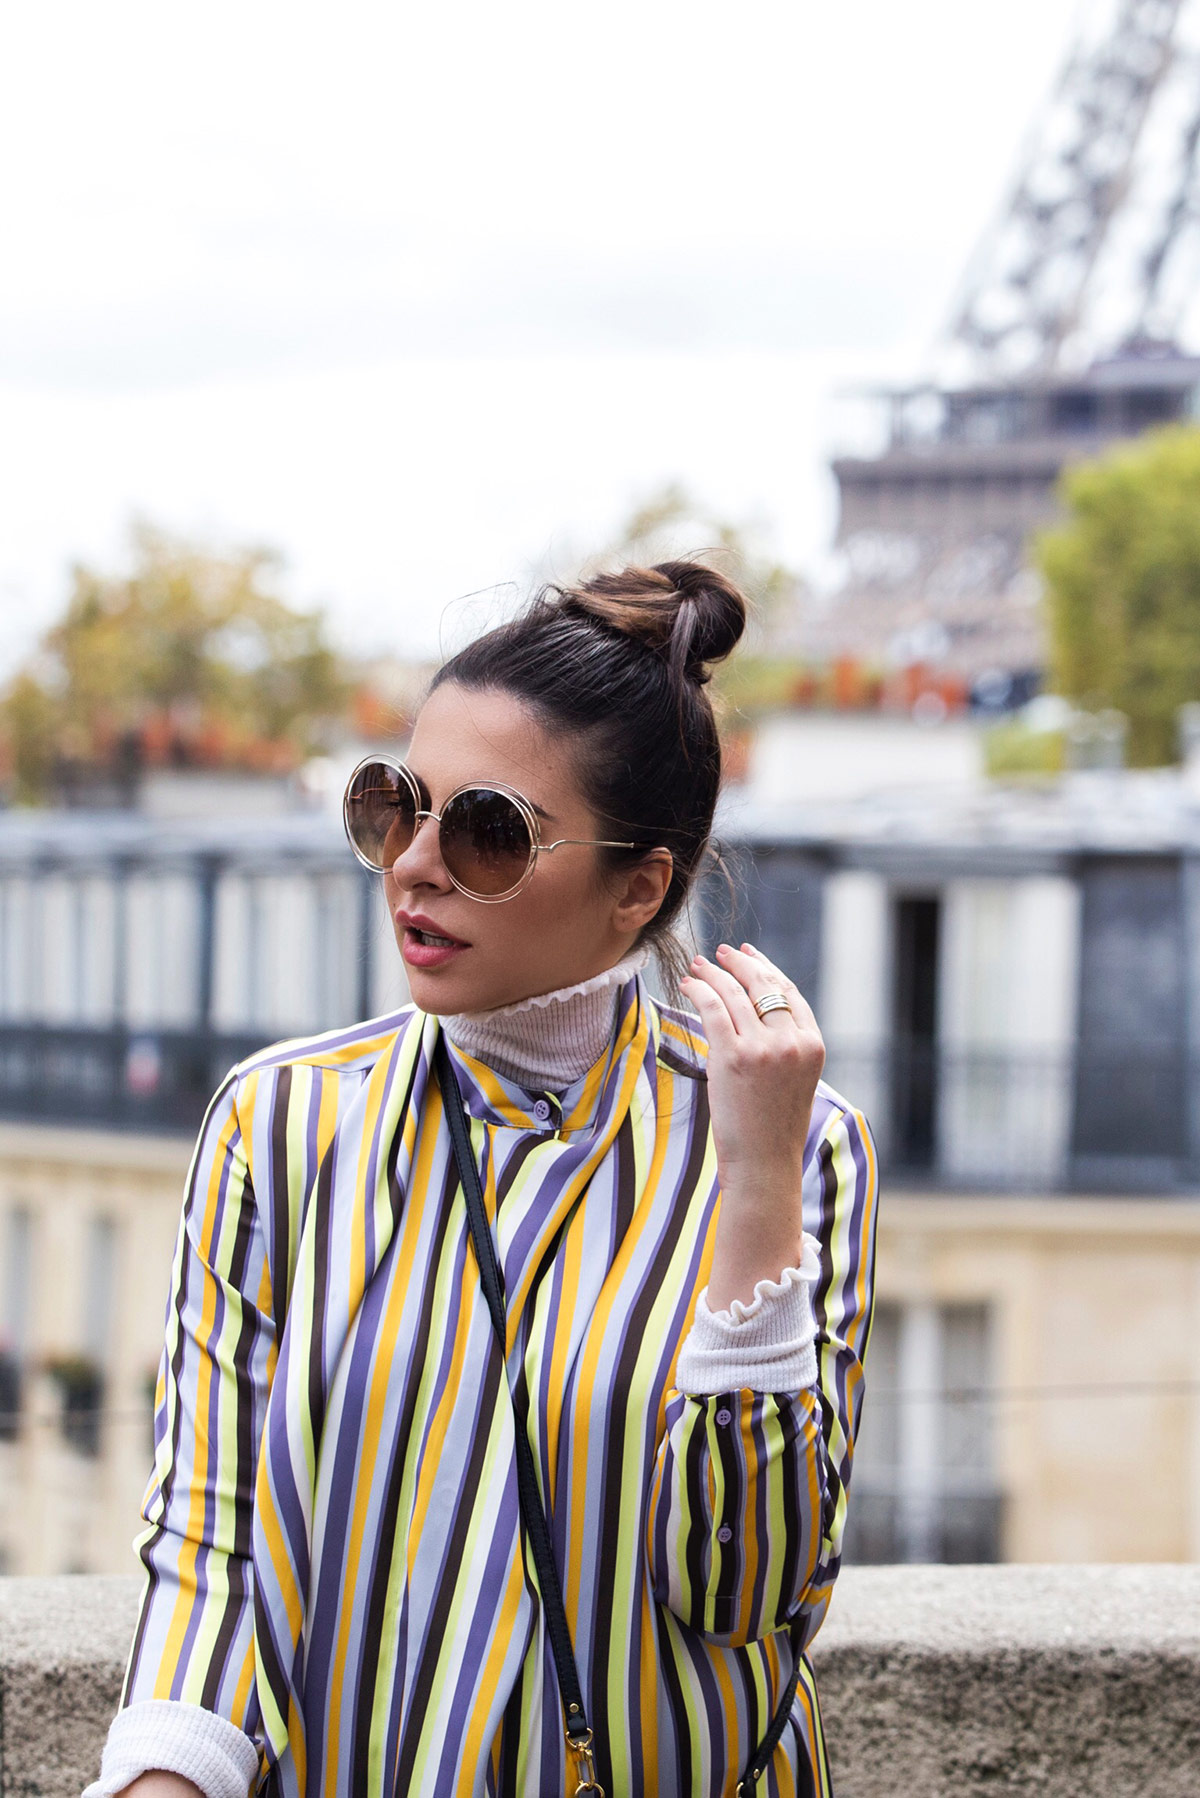 Striped Dress With Jeans & Statement Sunglasses At Paris Fashion Week